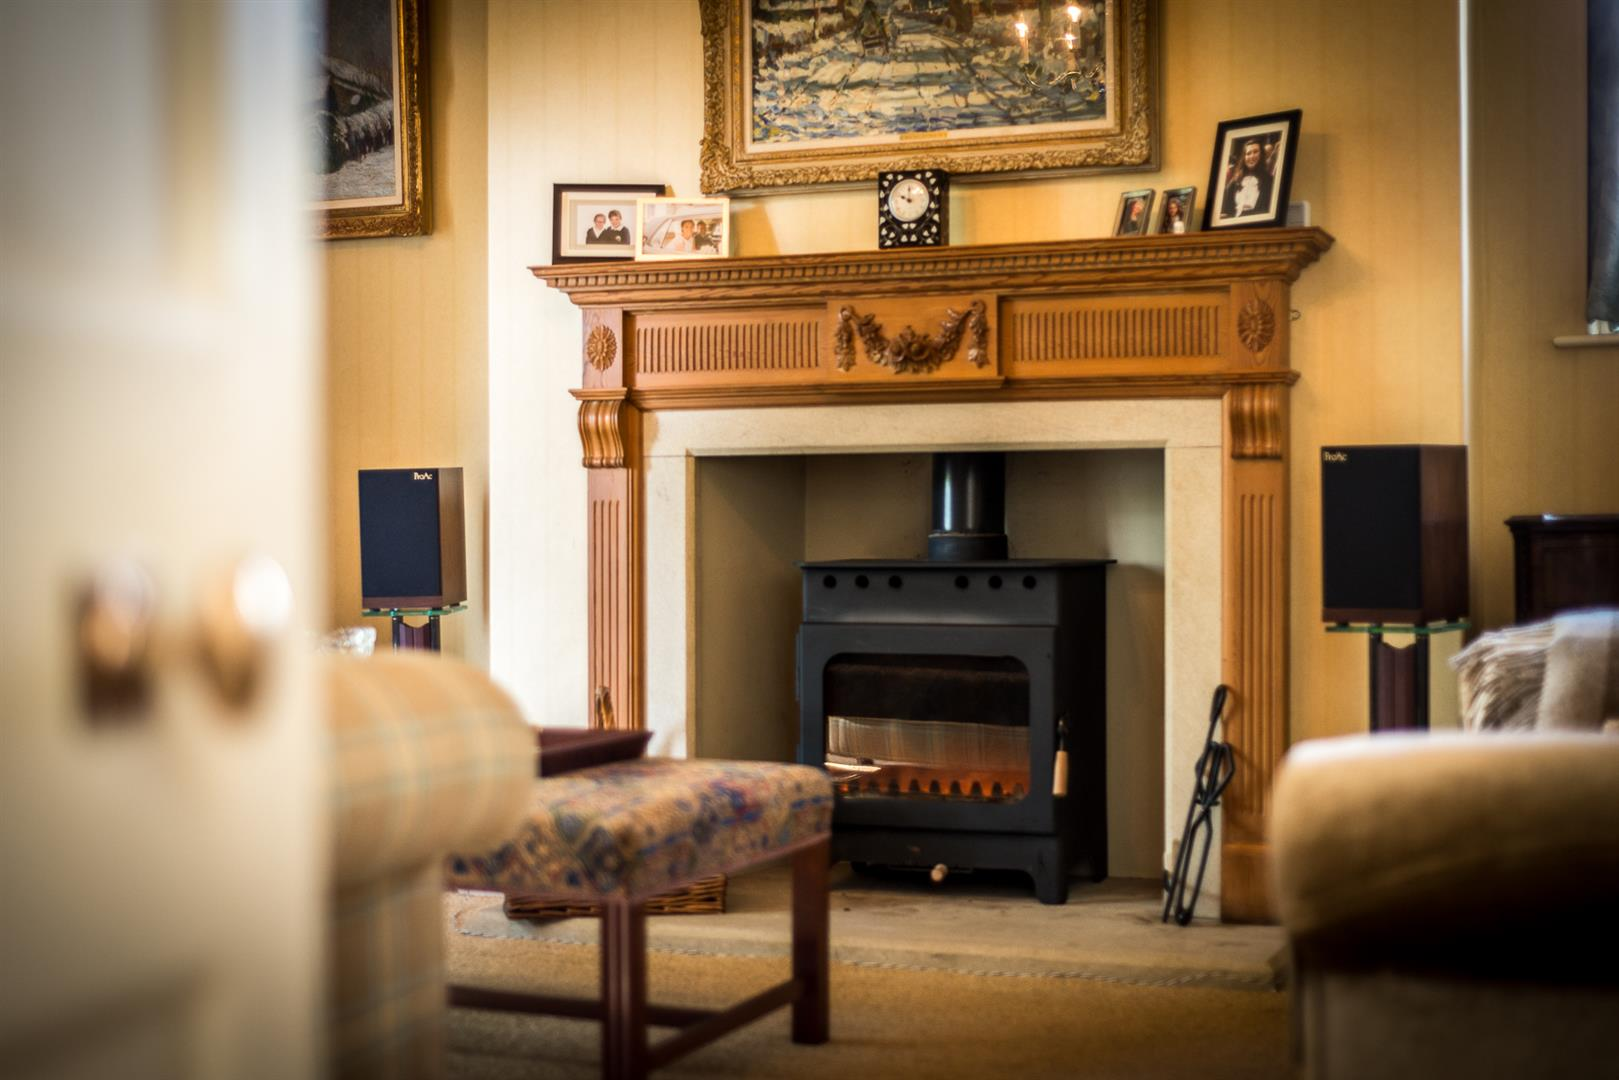 5 bedroom detached house For Sale in Bolton - fireplace (1).jpg.